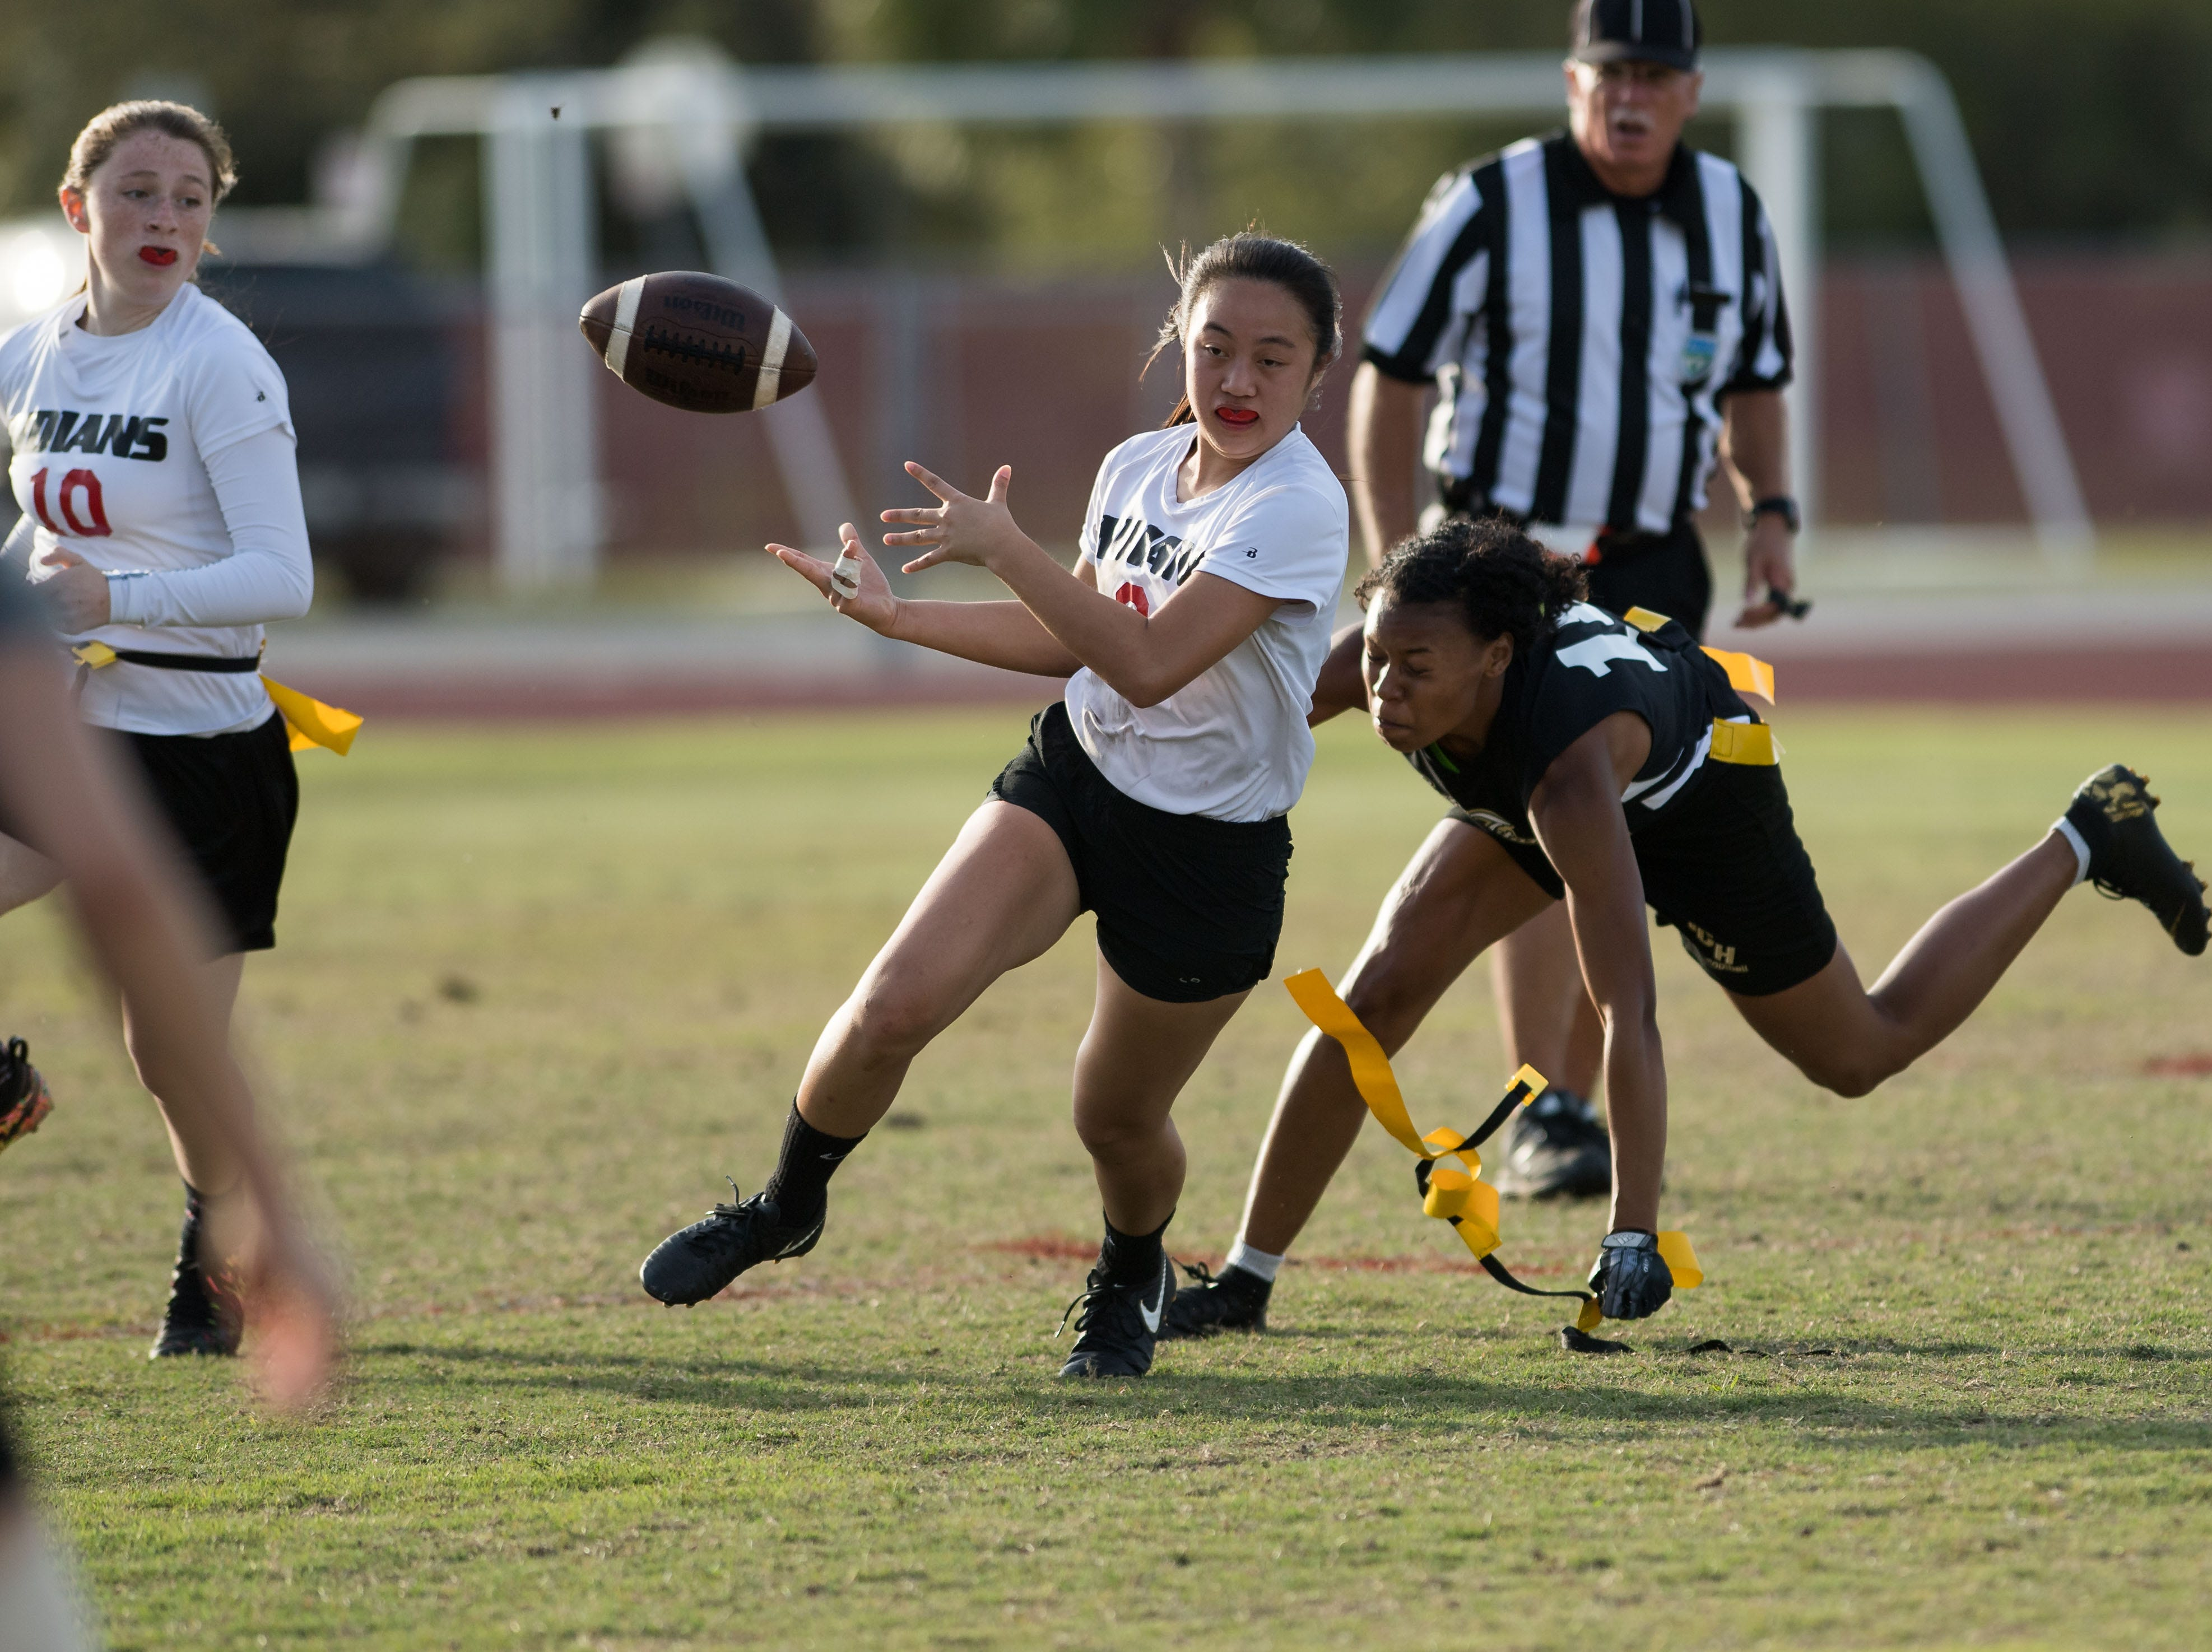 Treasure Coast plays against Vero Beach during the high school flag football game Wednesday, March 13, 2019, at Vero Beach High School.